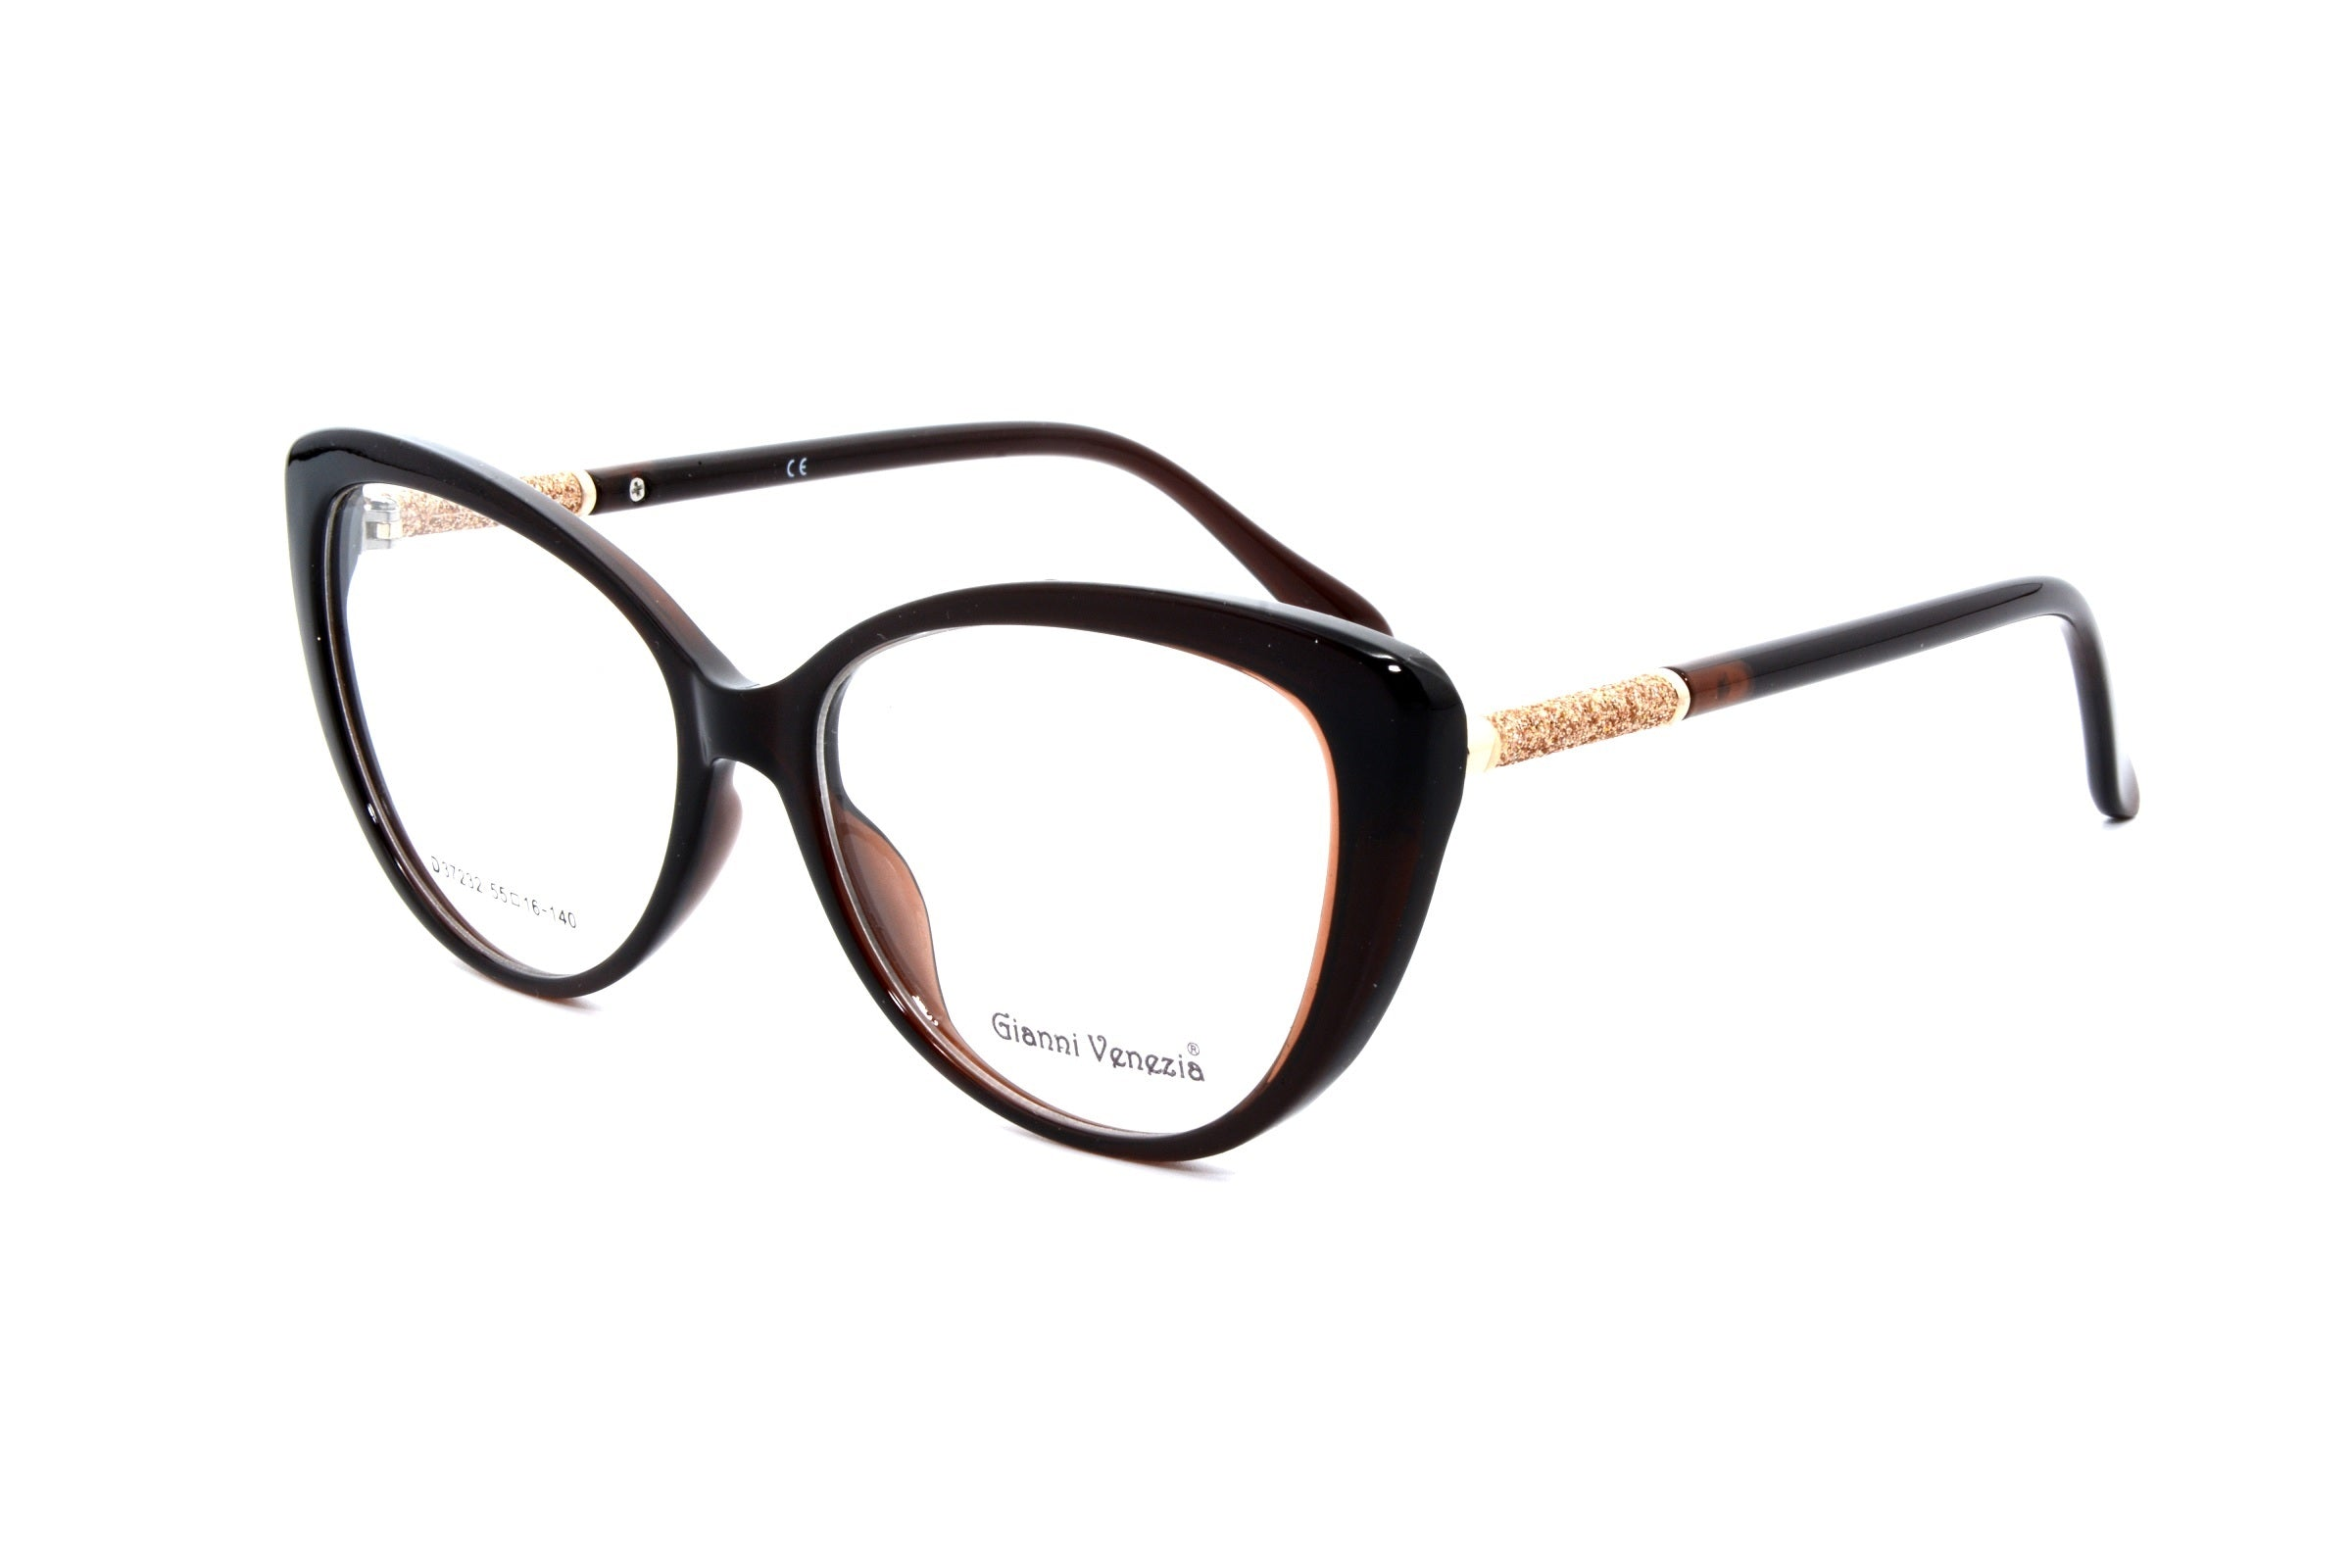 Gianni Vennezia eyewear 37232, C2 - Optics Trading